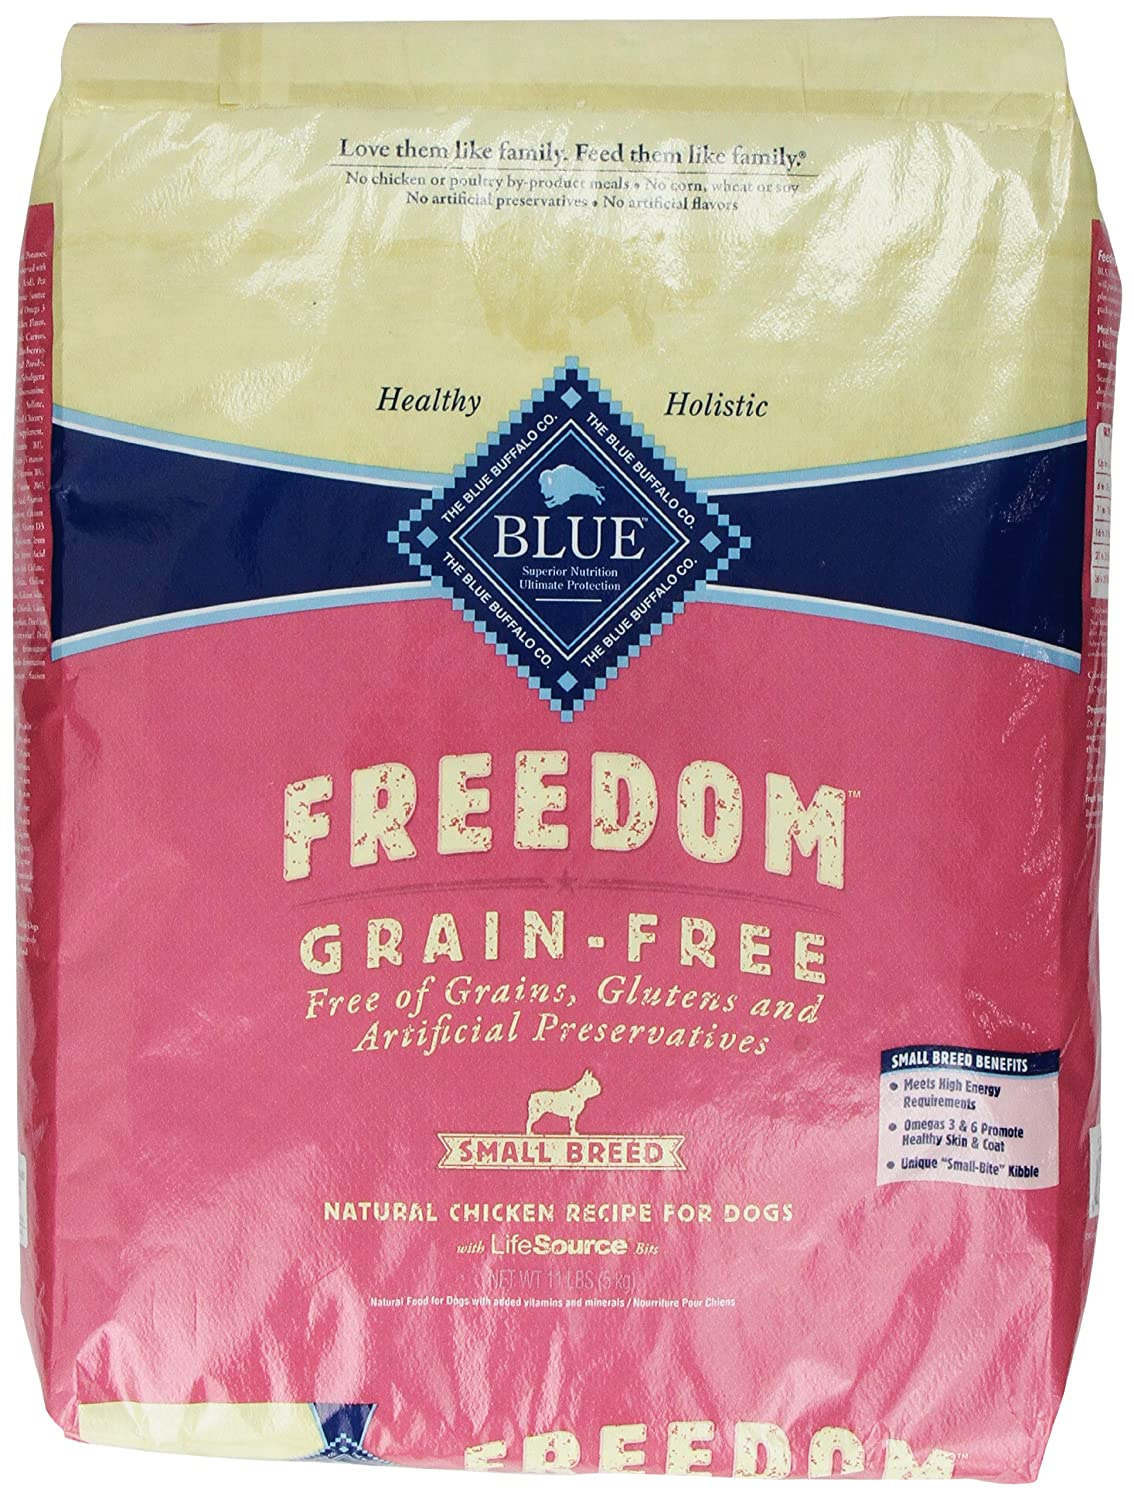 Best dog food for maltese dogs 5 awesome choices for optimal blue buffalo small breed chicken rice dog food maltese nutrition nvjuhfo Images